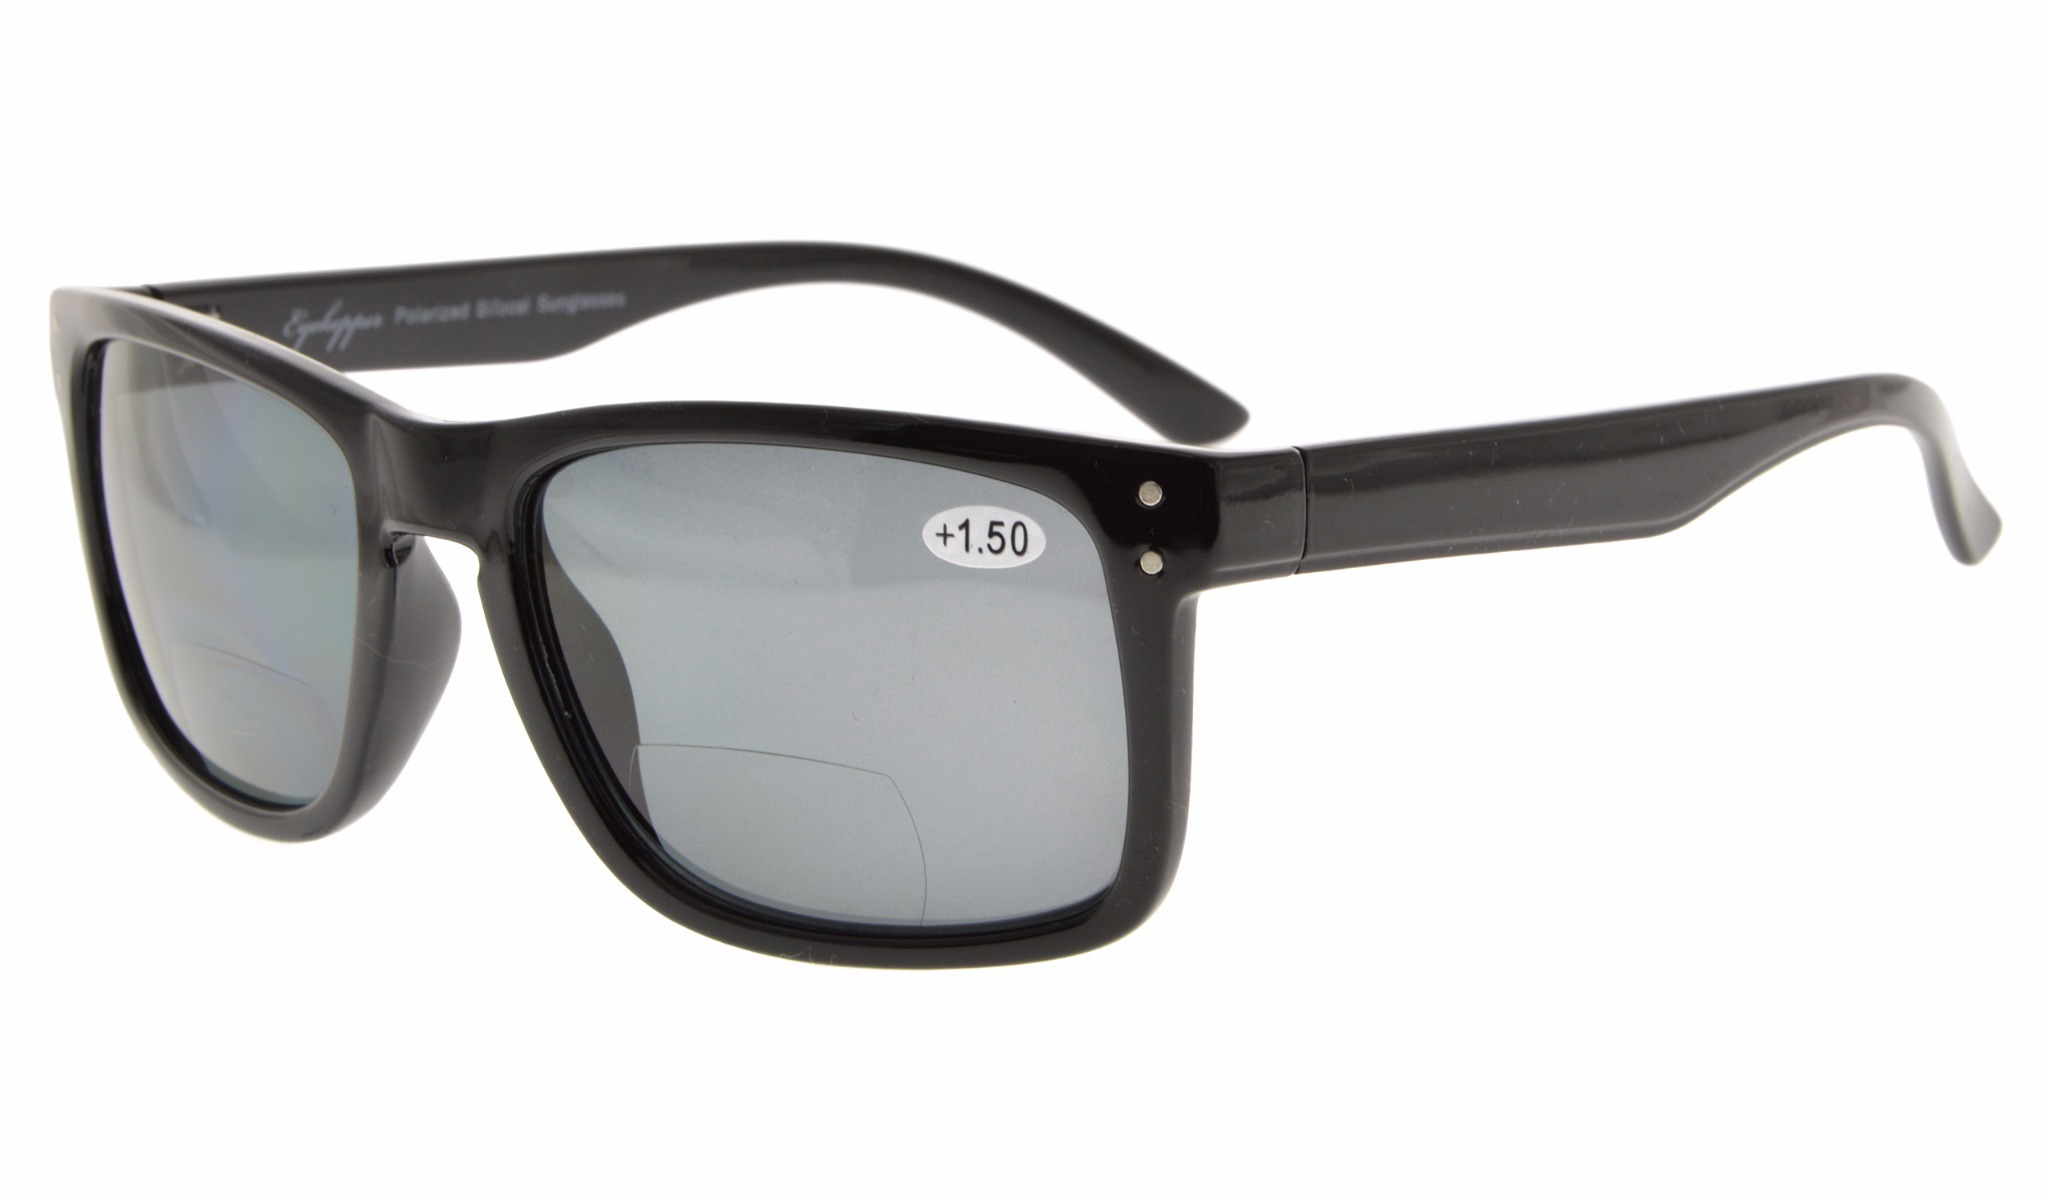 1970b9aea817 Eyekepper Polycarbonate Polarized Bifocal Sunglasses S031PGSG-Black Frame-Grey  Lens